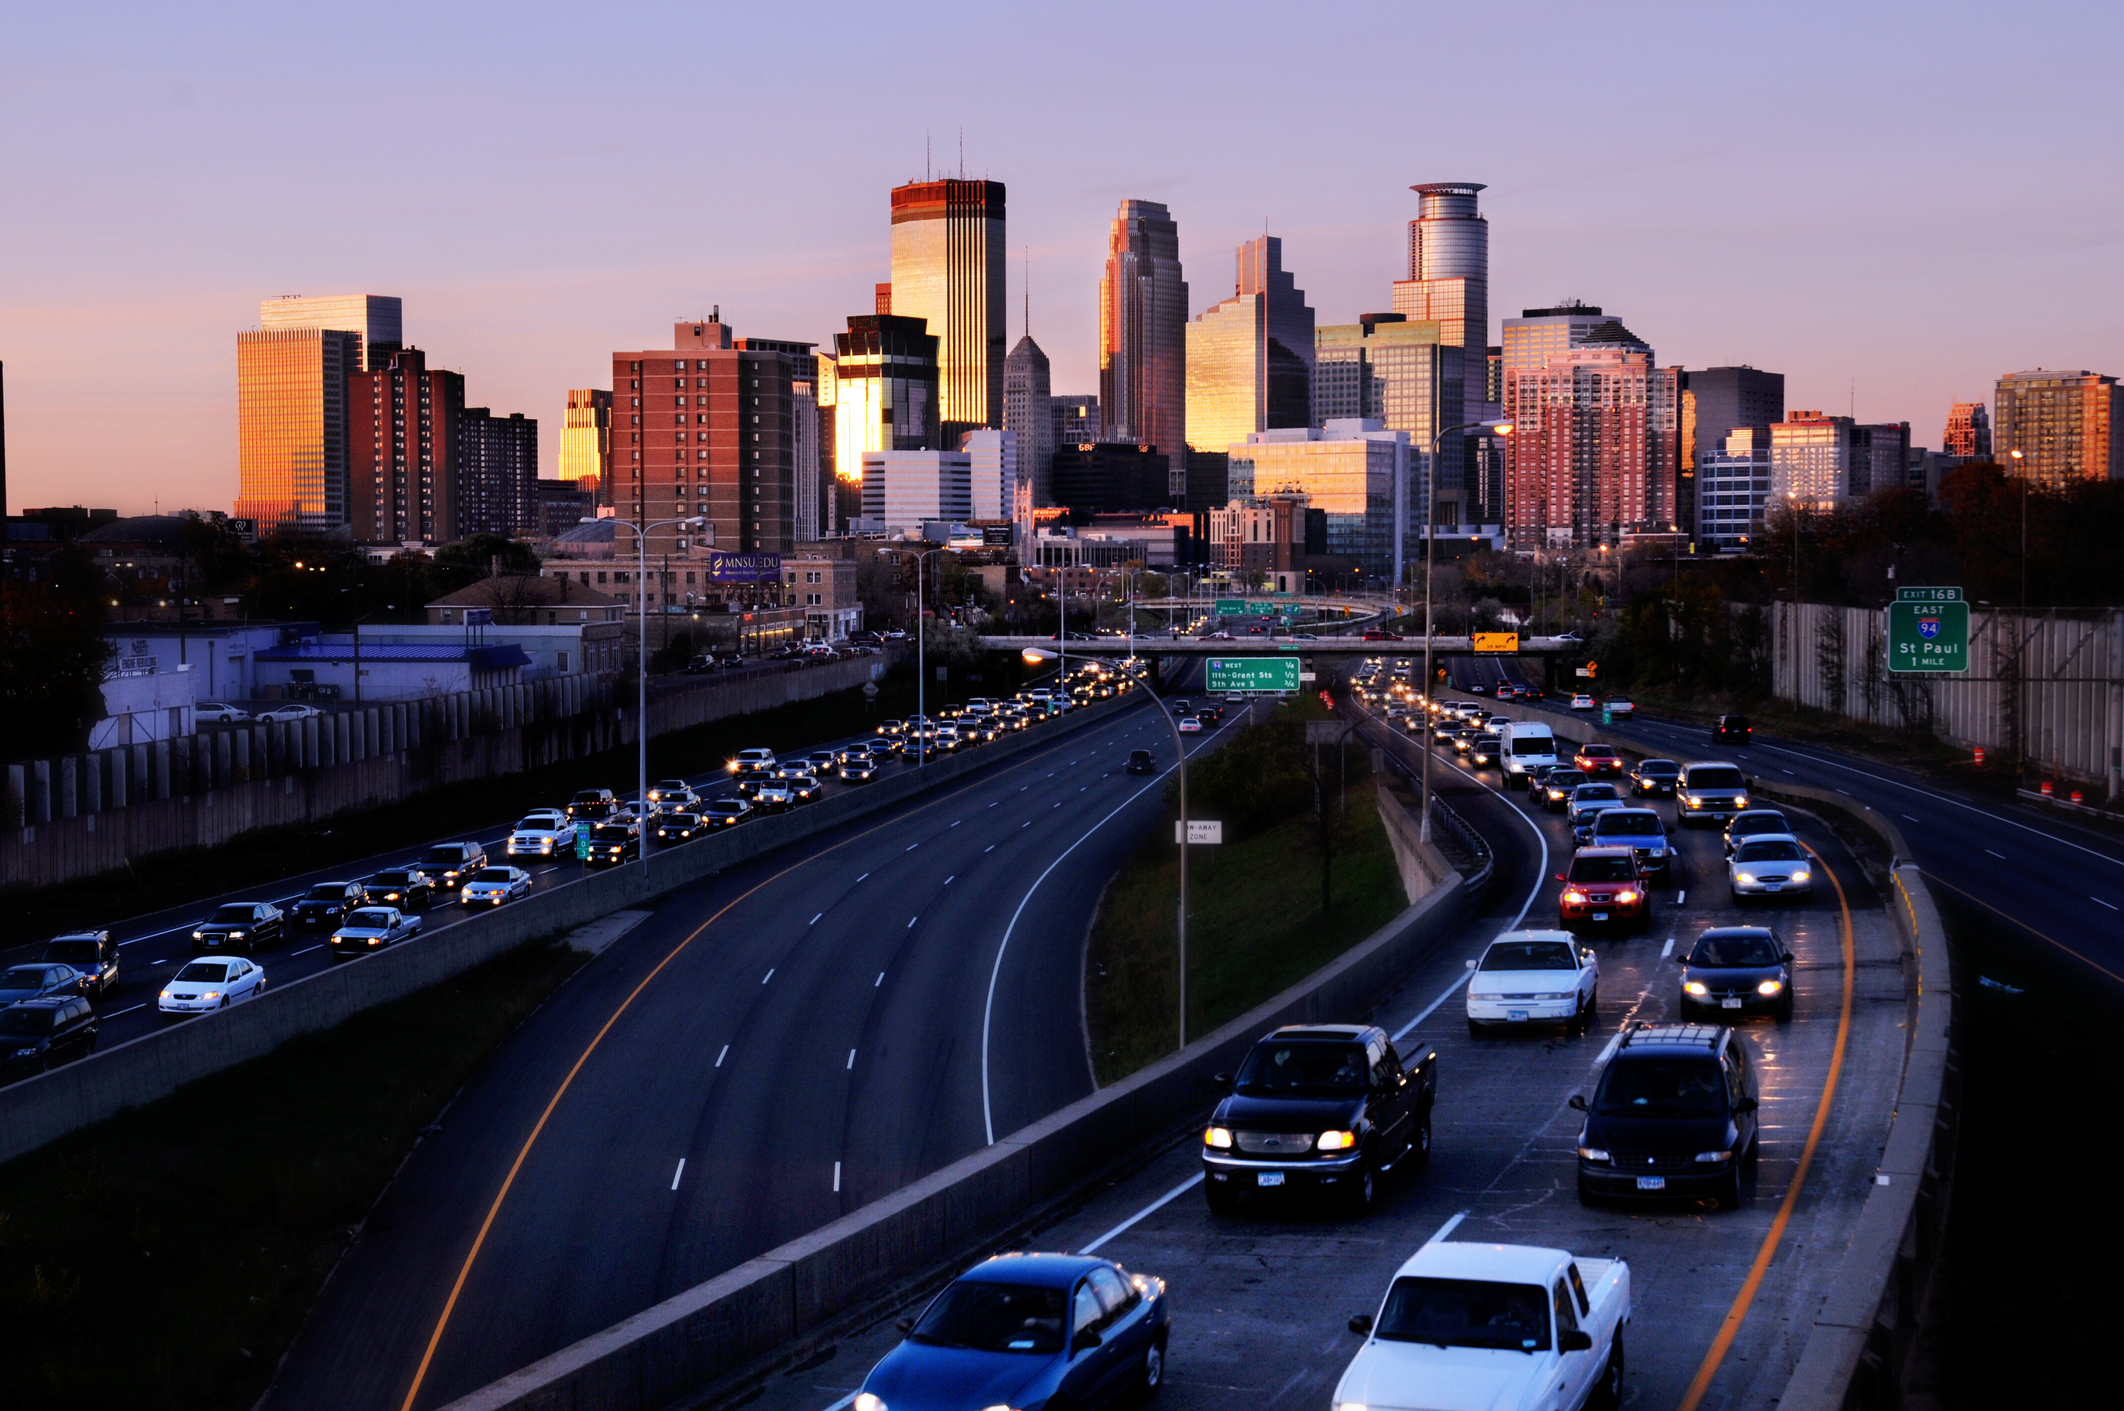 Dirty air and an overheated planet: Minnesota should enact clean car rules | Column